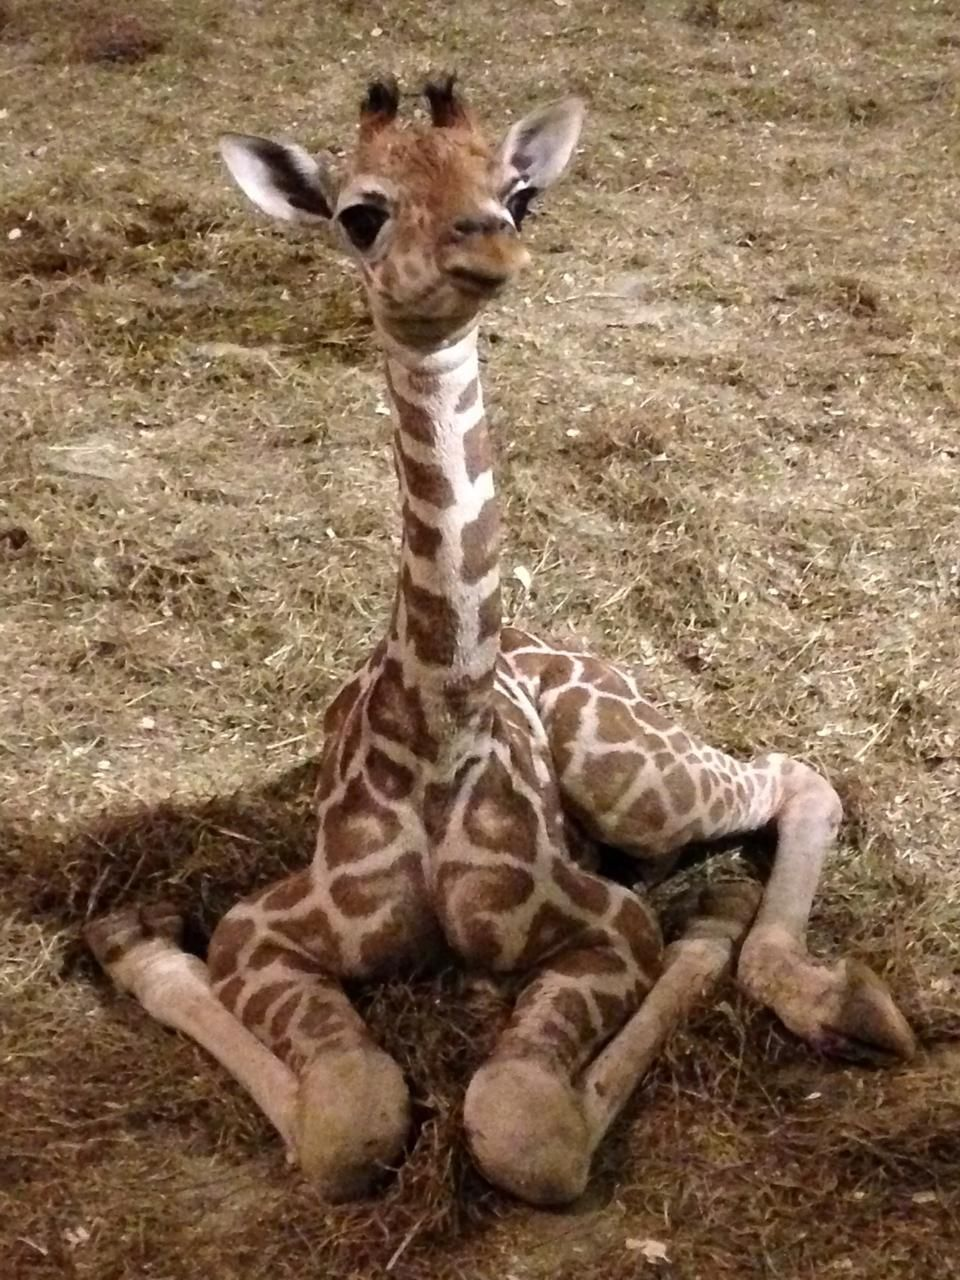 pictures of aprils' baby giraffe - - Yahoo Image Search ...